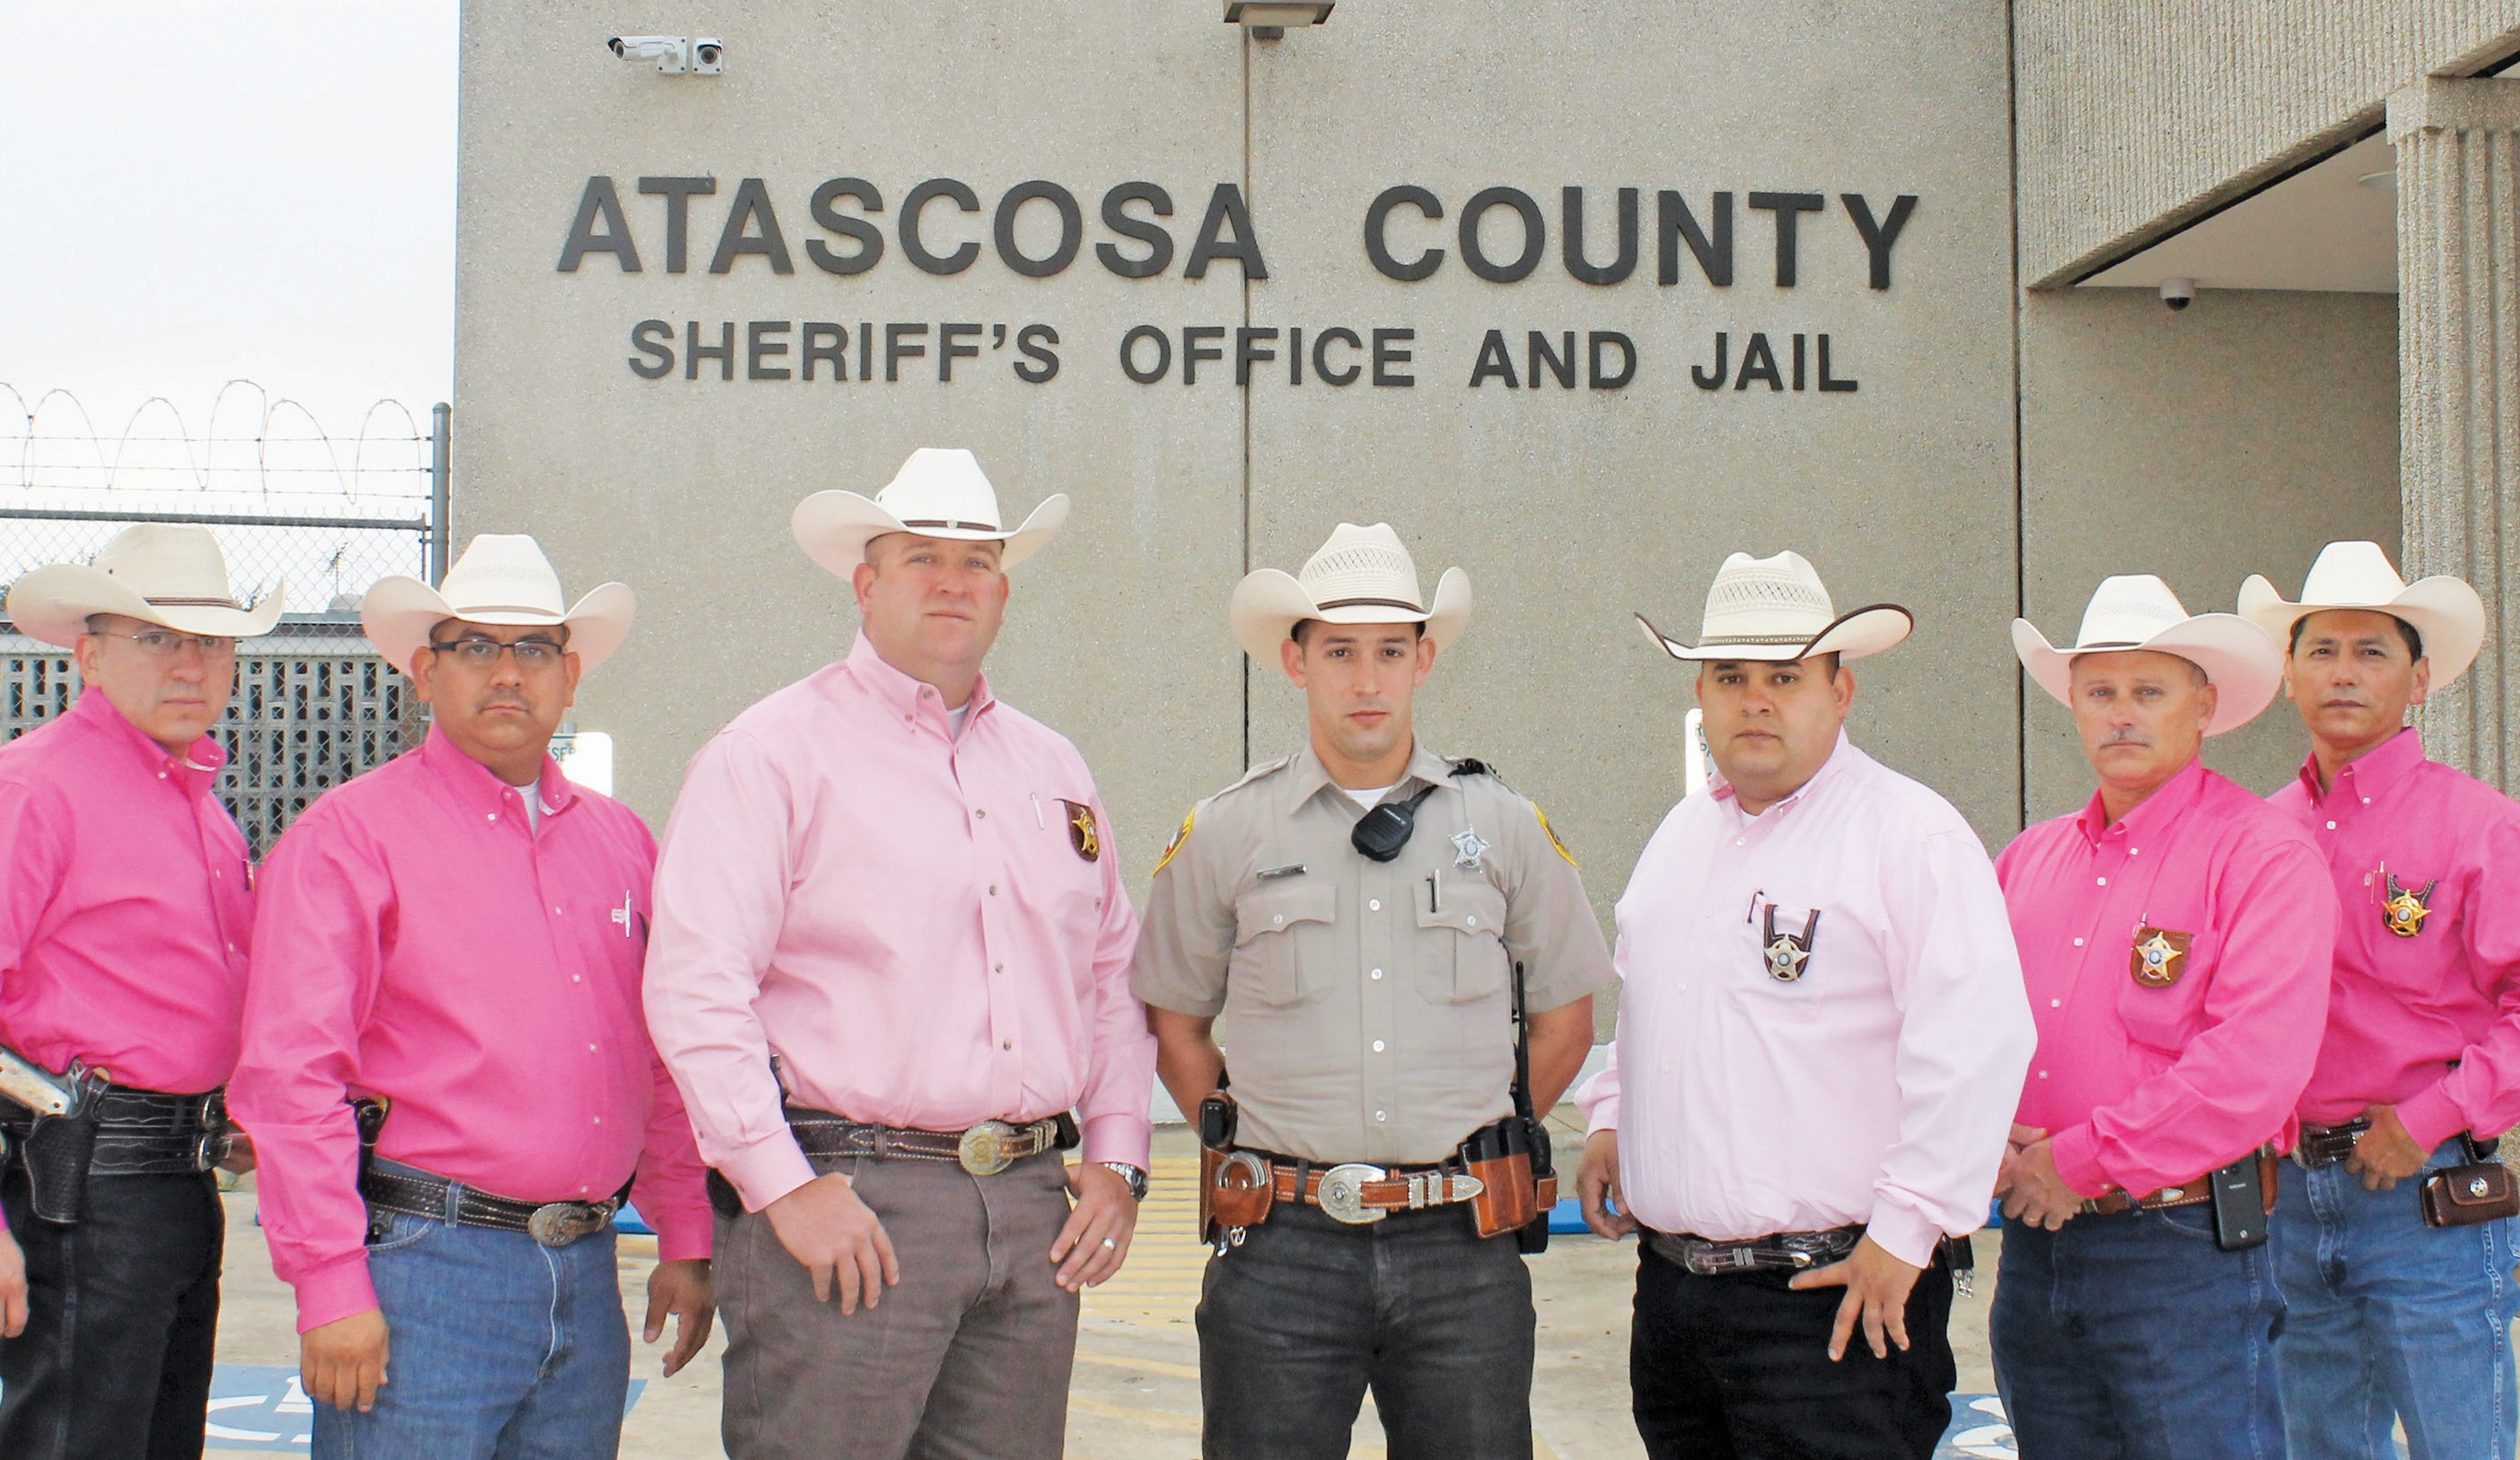 The Atascosa County Sheriff's Department wore pink on Tuesday, October 1 in honor of Breast Cancer Awareness Month. Left to right are: Sgt. Investigator Max Peralta, Sgt. Investigator Albert Garza, Captain Investigator Matt Miller, Deputy Stephen Wilson, Sgt. Investigator Jesse Martinez, Lt. Investigator Wayne Stratton and Chief Investigator Jake Guerra.